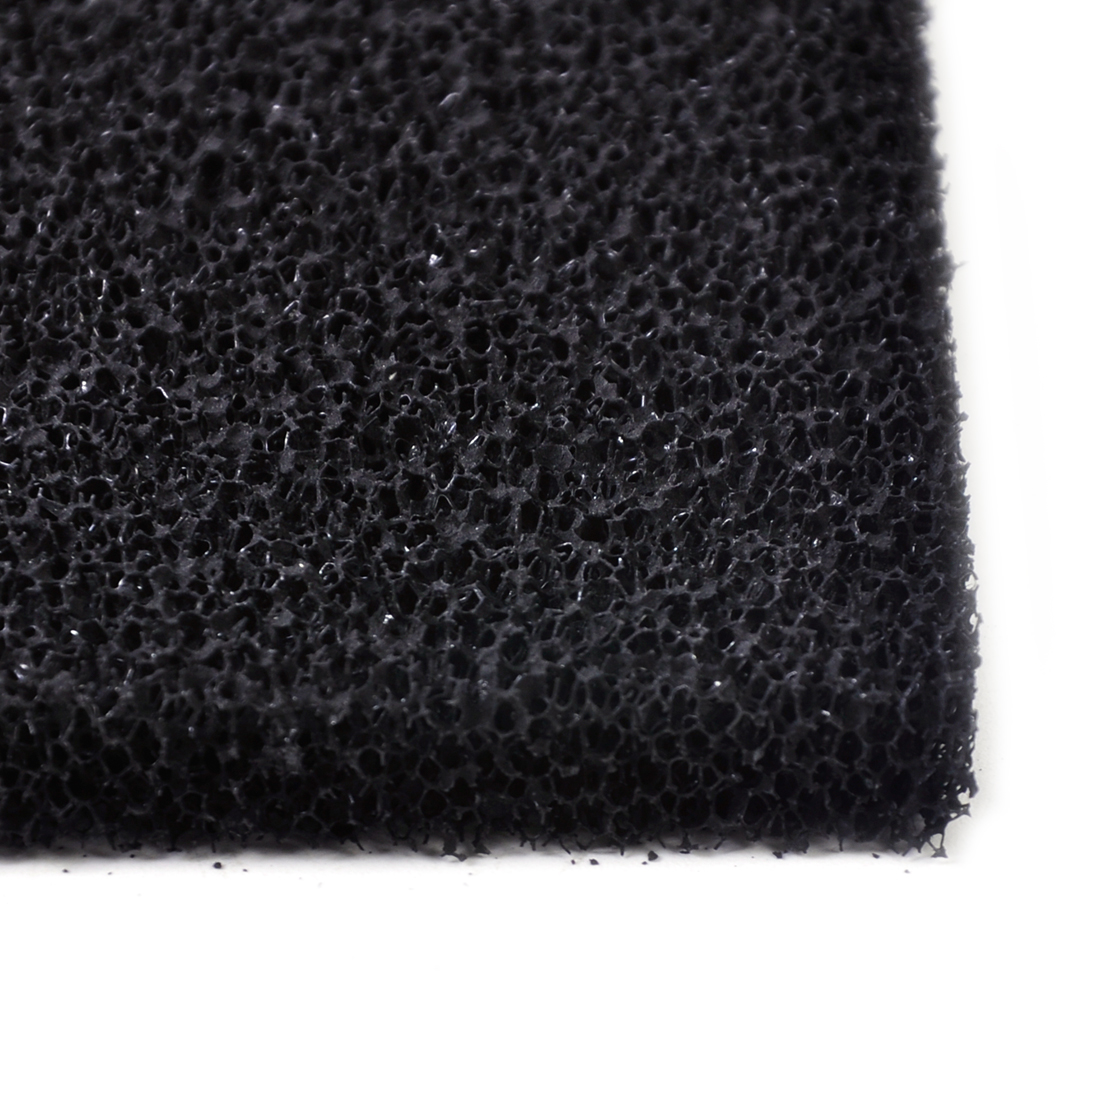 ACTIVATED CARBON FOAM FILTER SHEET Various Sizes and Apps ... |Graphite Foam